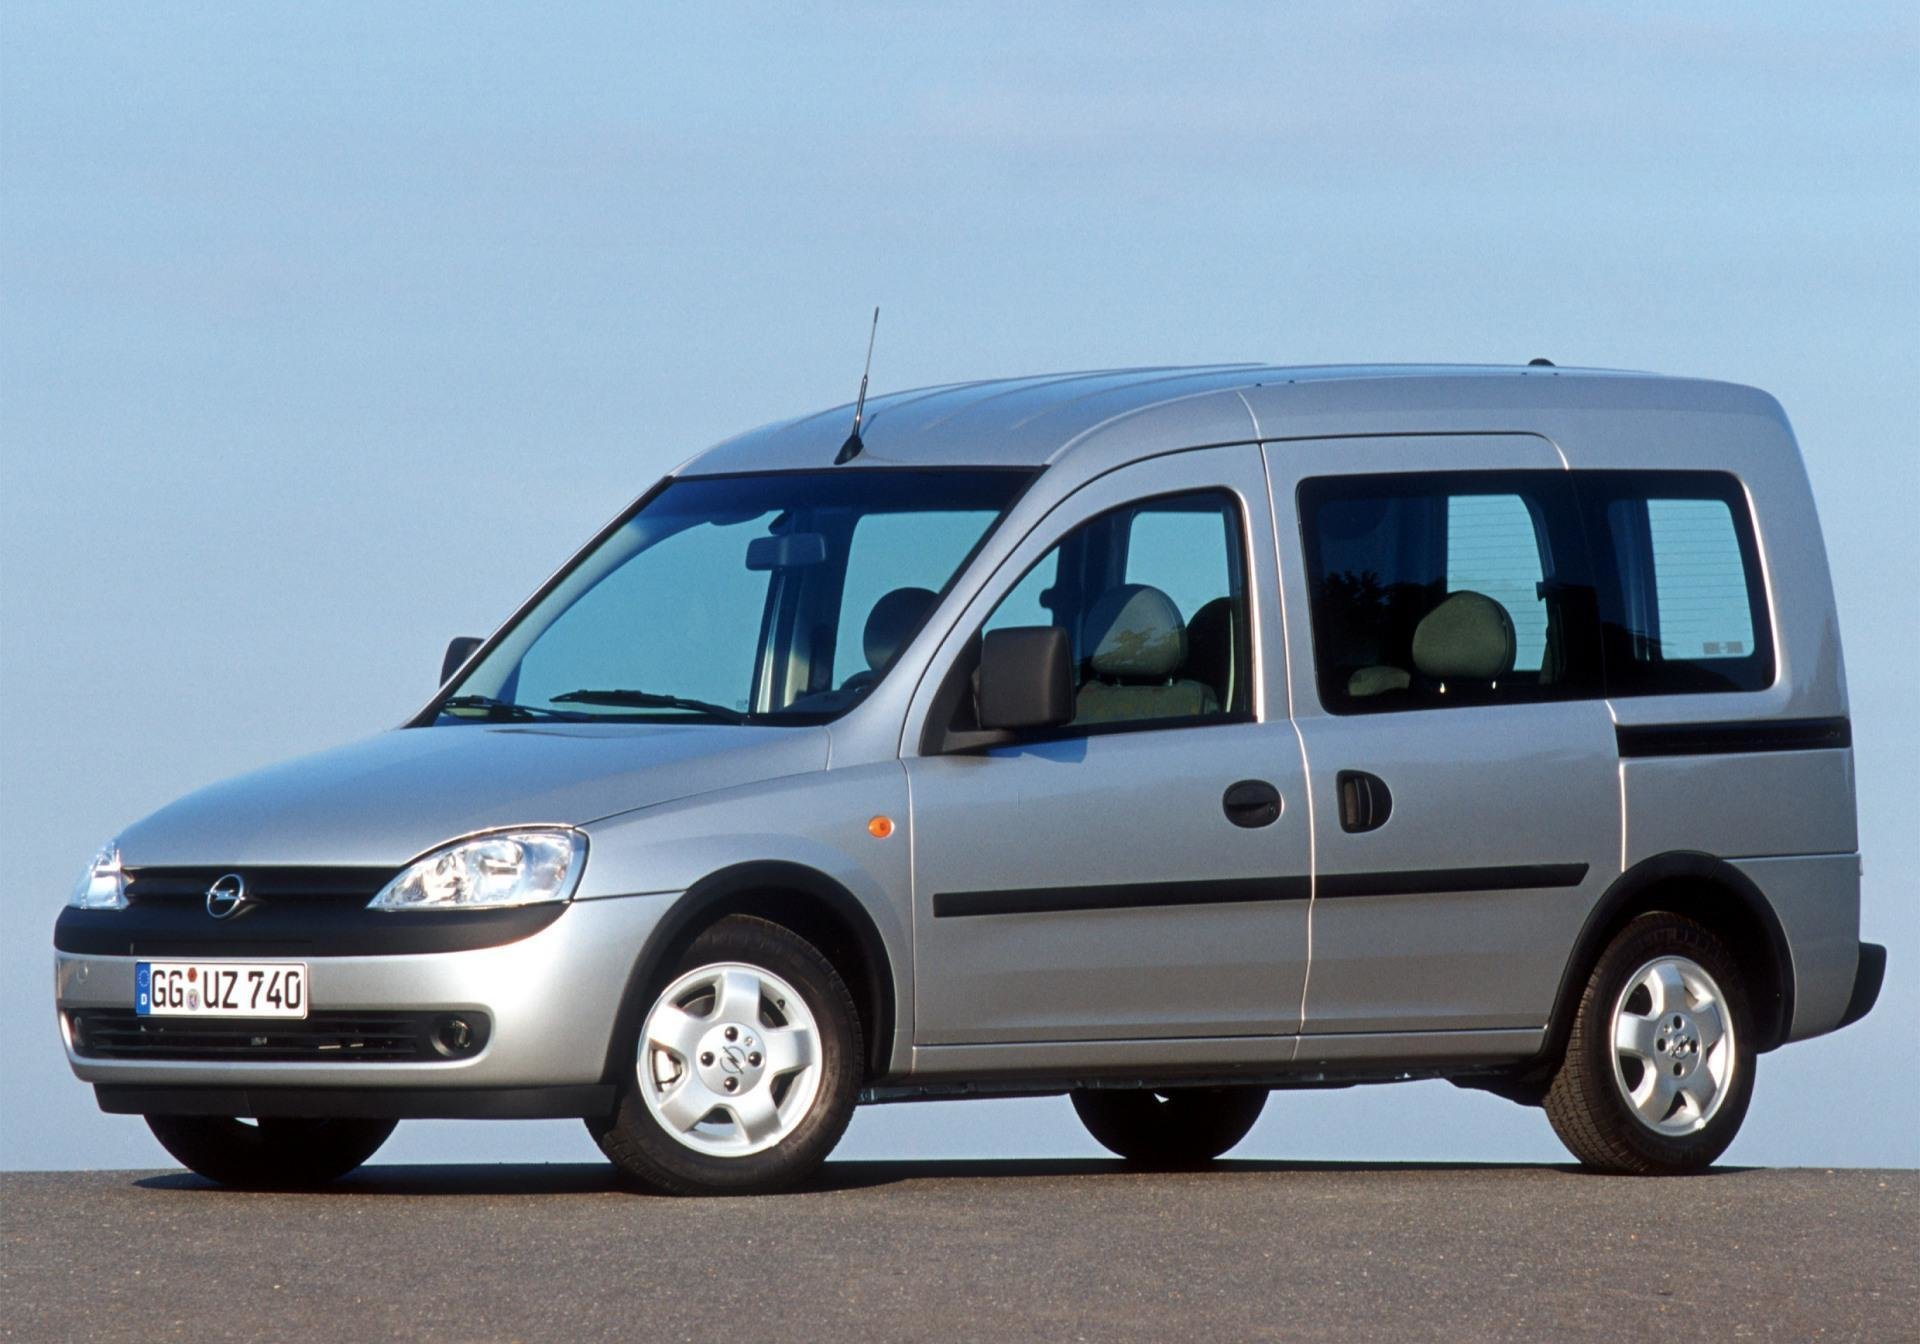 New 2009 Opel Combo Conceptcarz Com On This Month